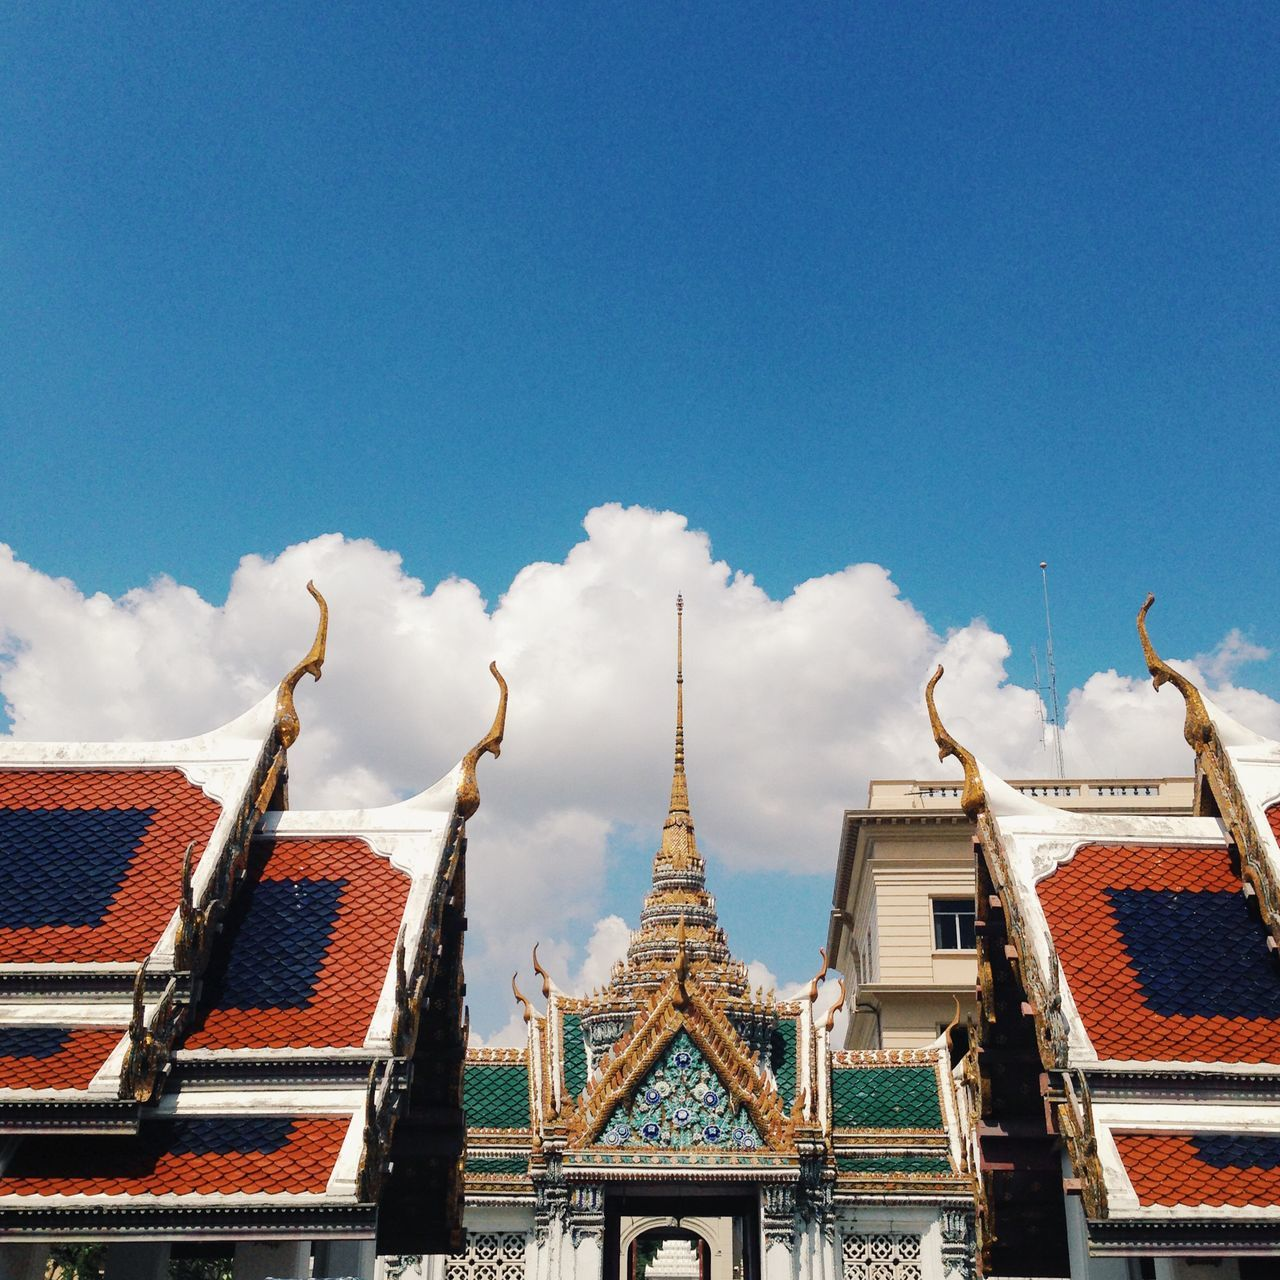 Buildings at grand palace against sky